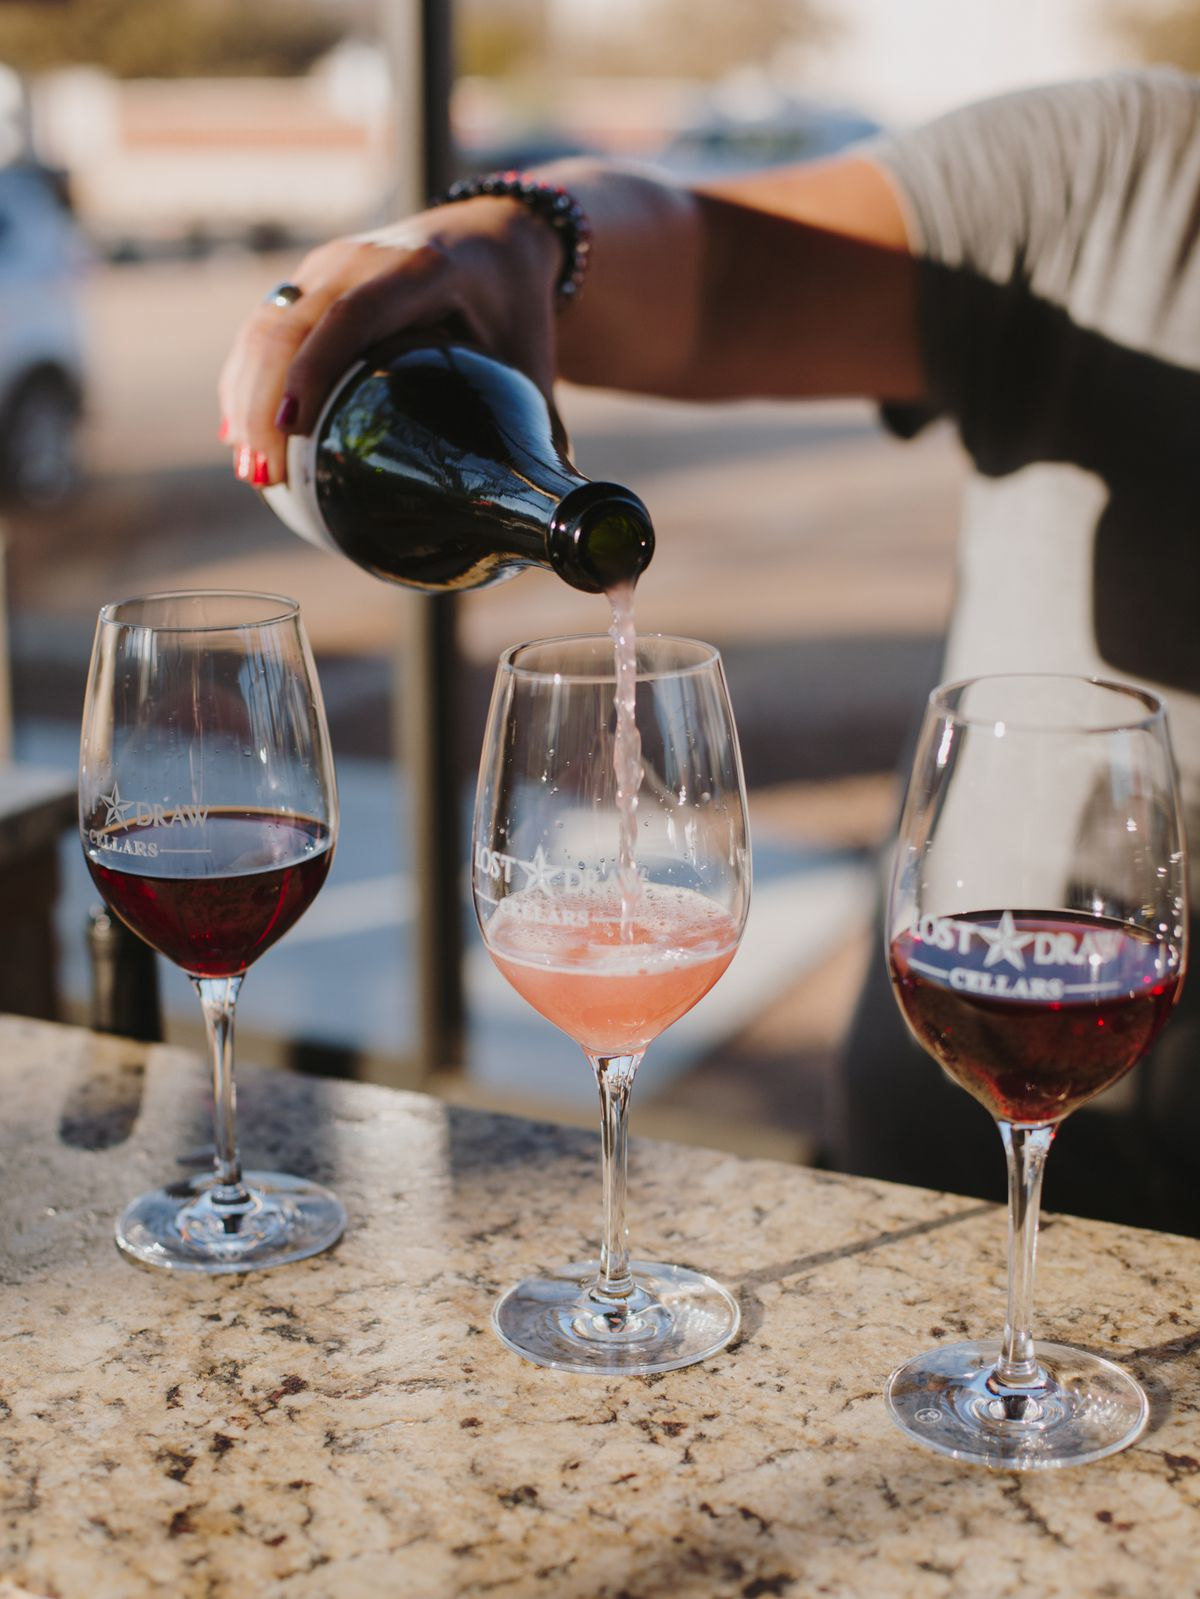 Pink wine is poured into an empty wine glass that is flanked on either side by a stem of red wine.